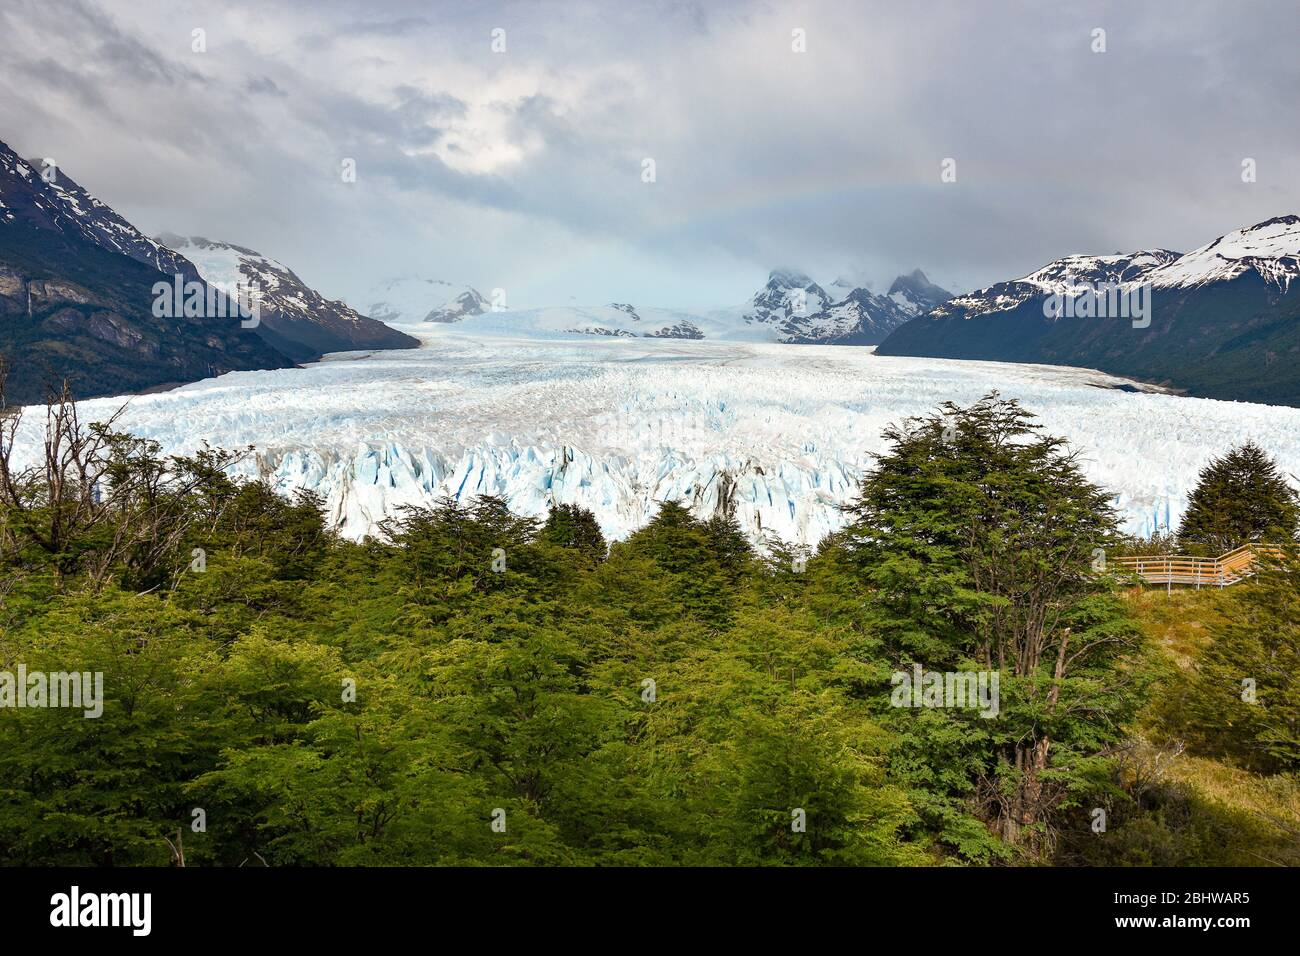 landscape with Perito Moreno glacier, andes mountains, forest and rainbow, Patagonia, Argentina Stock Photo